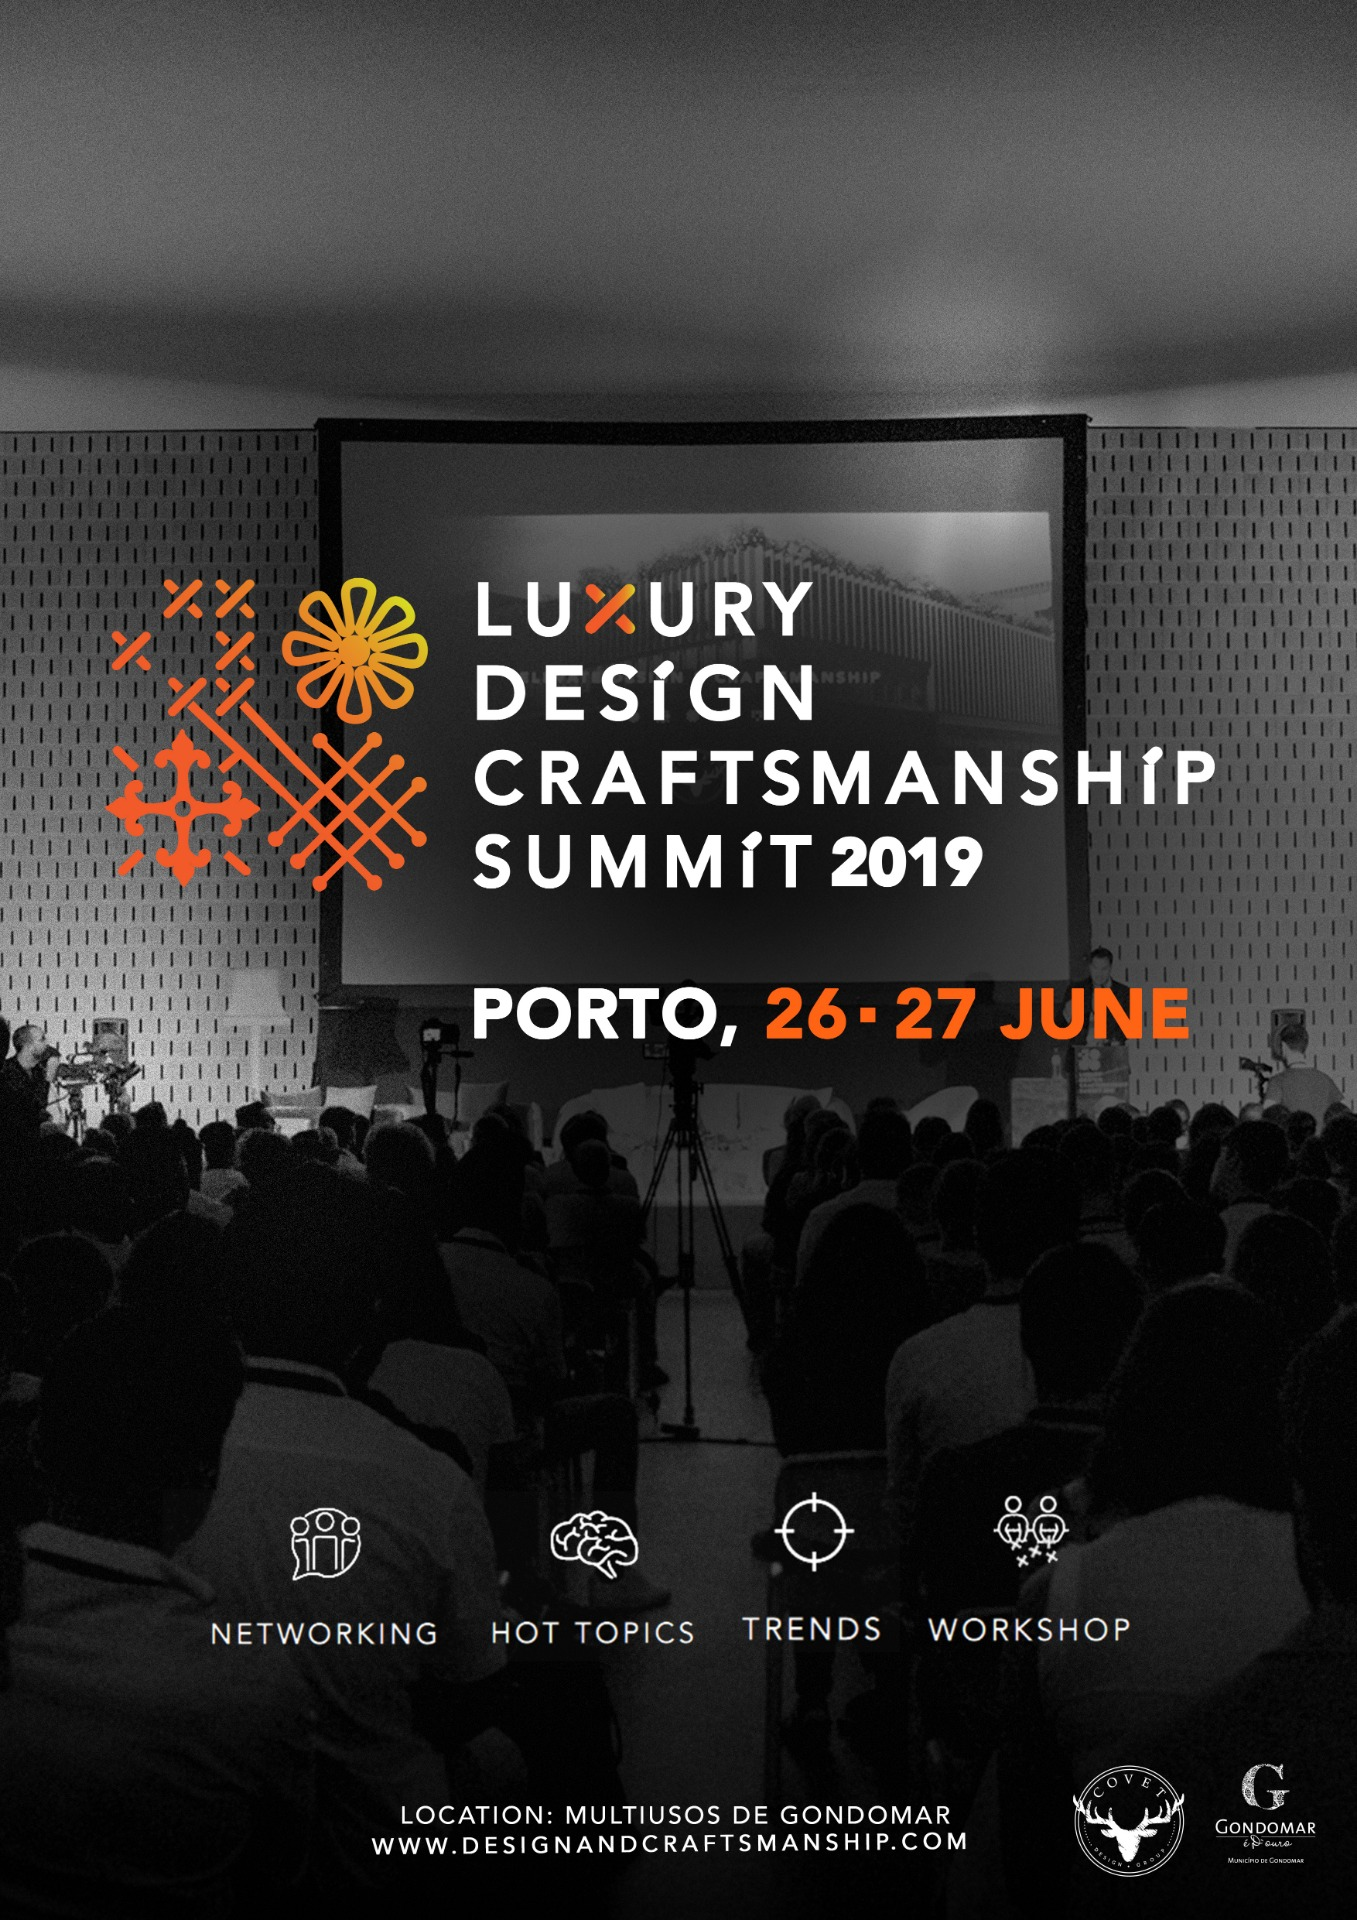 Celebrating Craftsmanship The Luxury Design+Craftsmanship Summit 2019 (2) luxury design Celebrating Craftsmanship: The Luxury Design+Craftsmanship Summit 2019 Celebrating Craftsmanship The Luxury DesignCraftsmanship Summit 2019 2